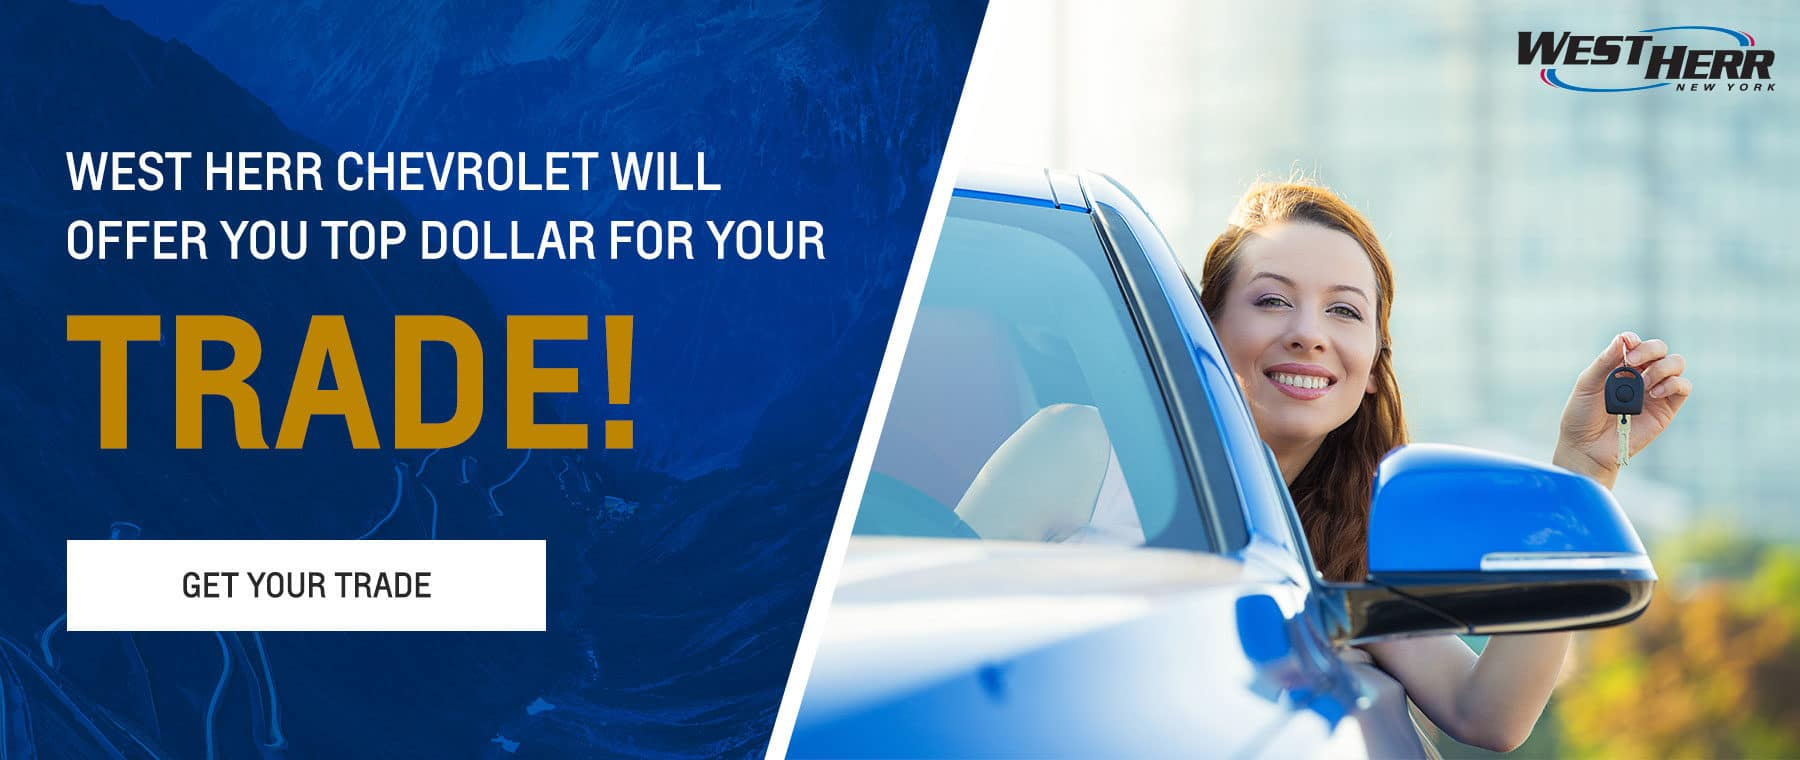 West Herr Chevrolet will offer you top dollar for your trade! CTA: Get Your Trade In Offer